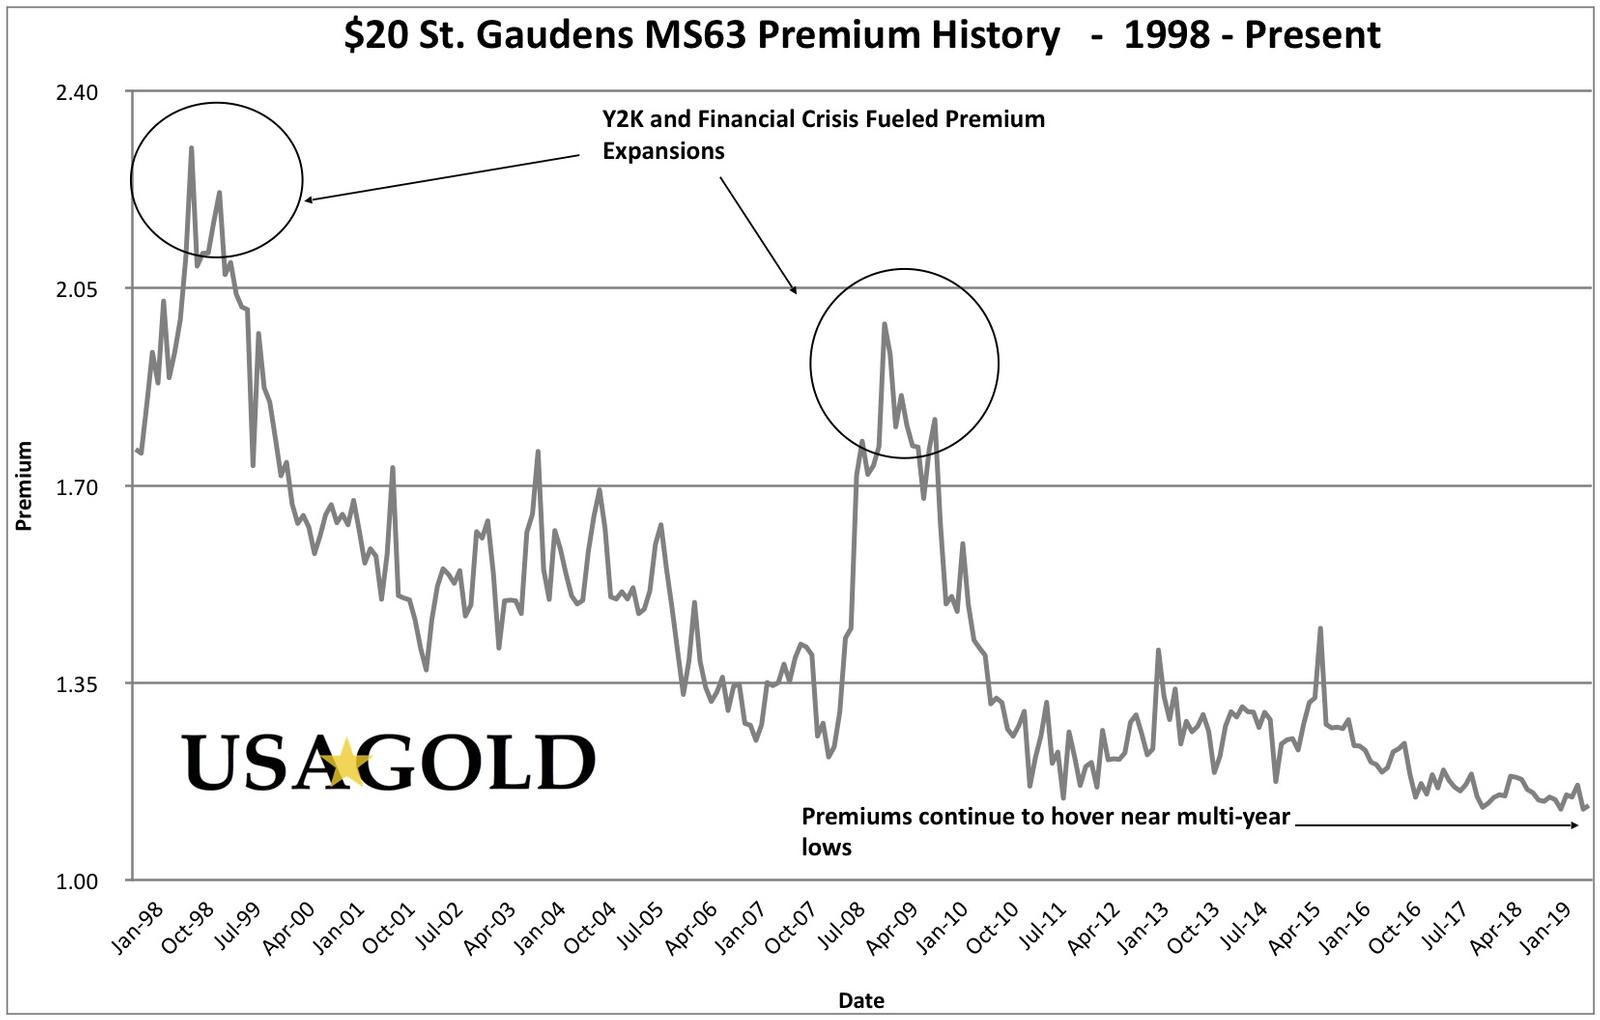 Track the value of MS63 U.S. $20 St. Gaudens gold coins as they compare to the price of gold with this 20 year premium history chart.